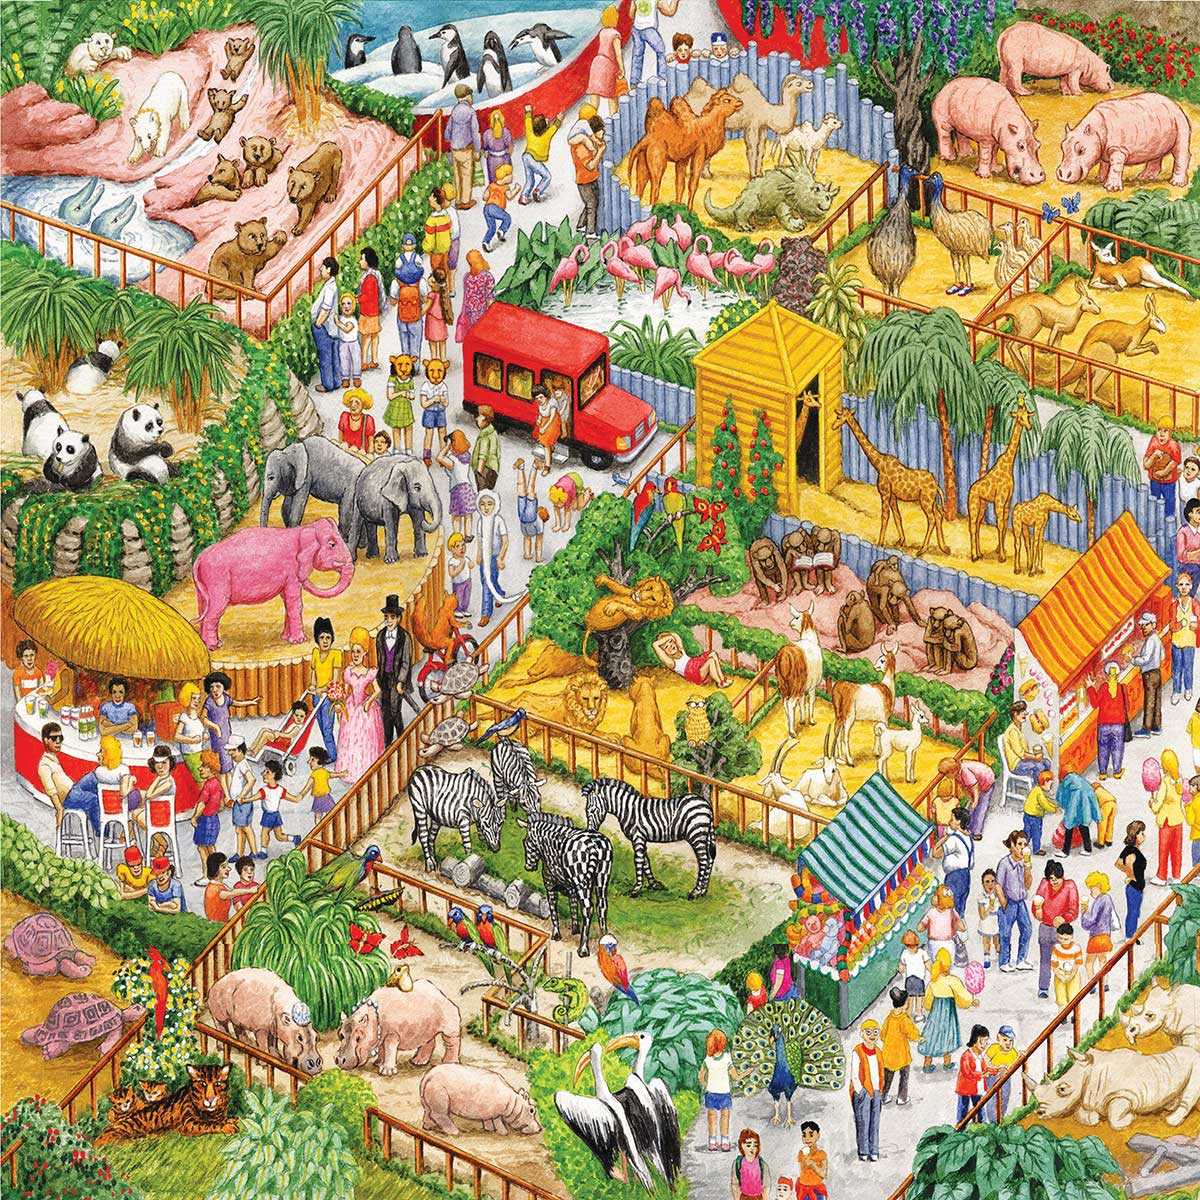 A Crazy Zoo Animals Jigsaw Puzzle